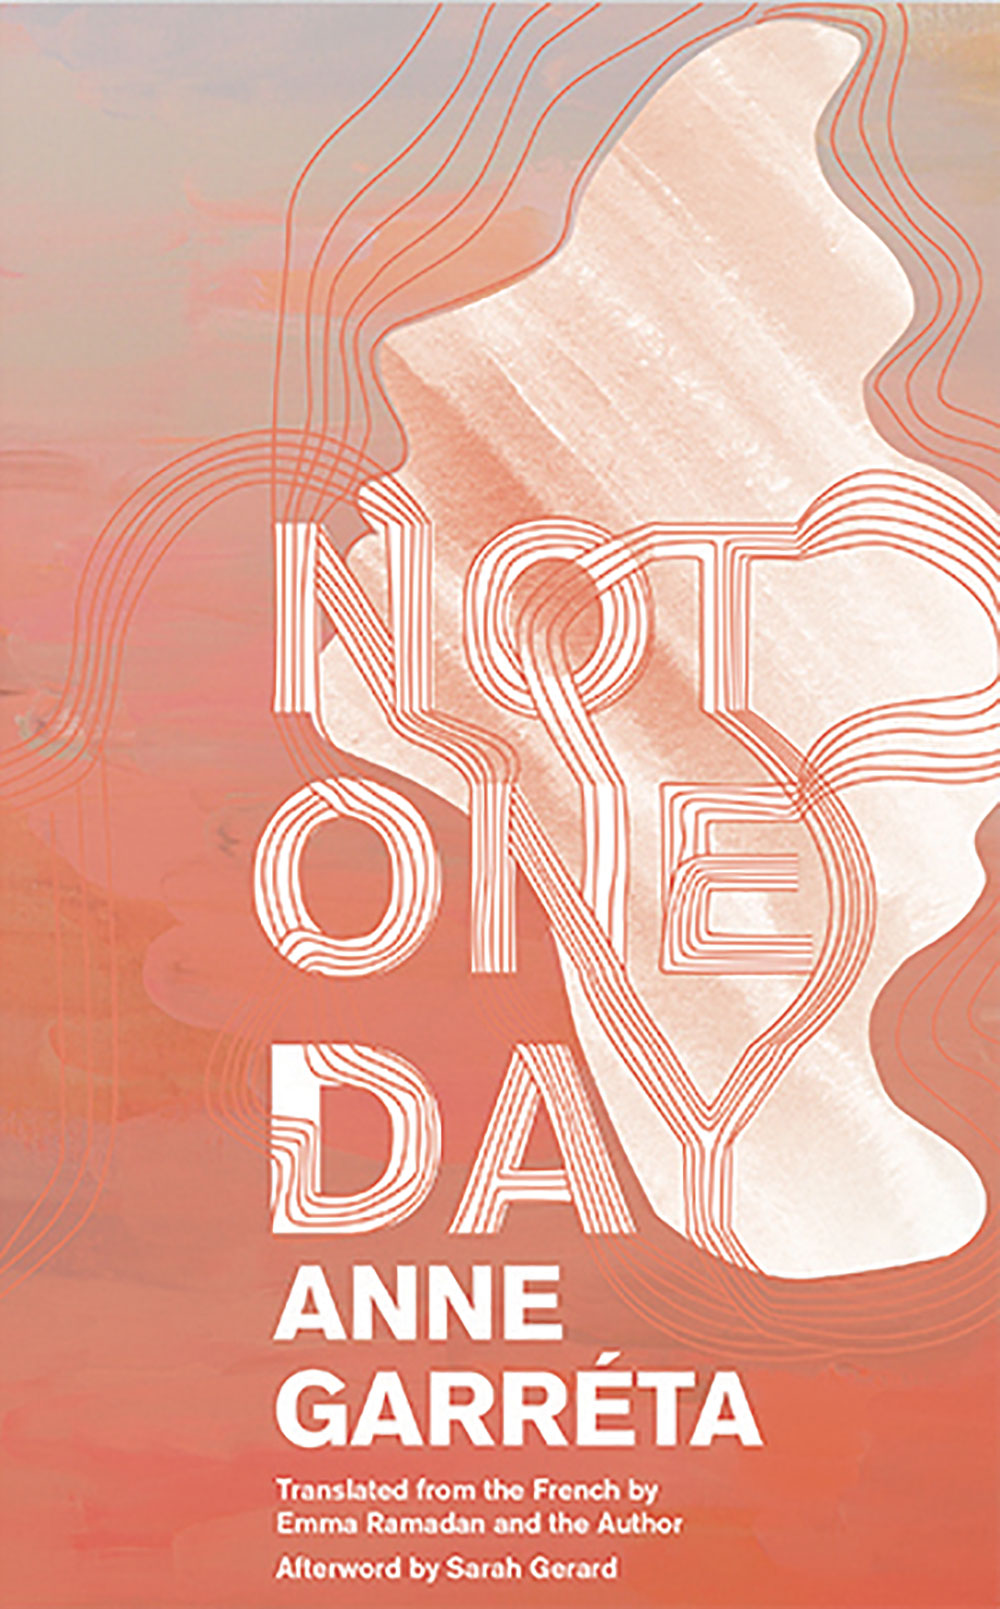 170255888-07052017-anne-garreta-not-one-day-bomb-magazine-01.jpg